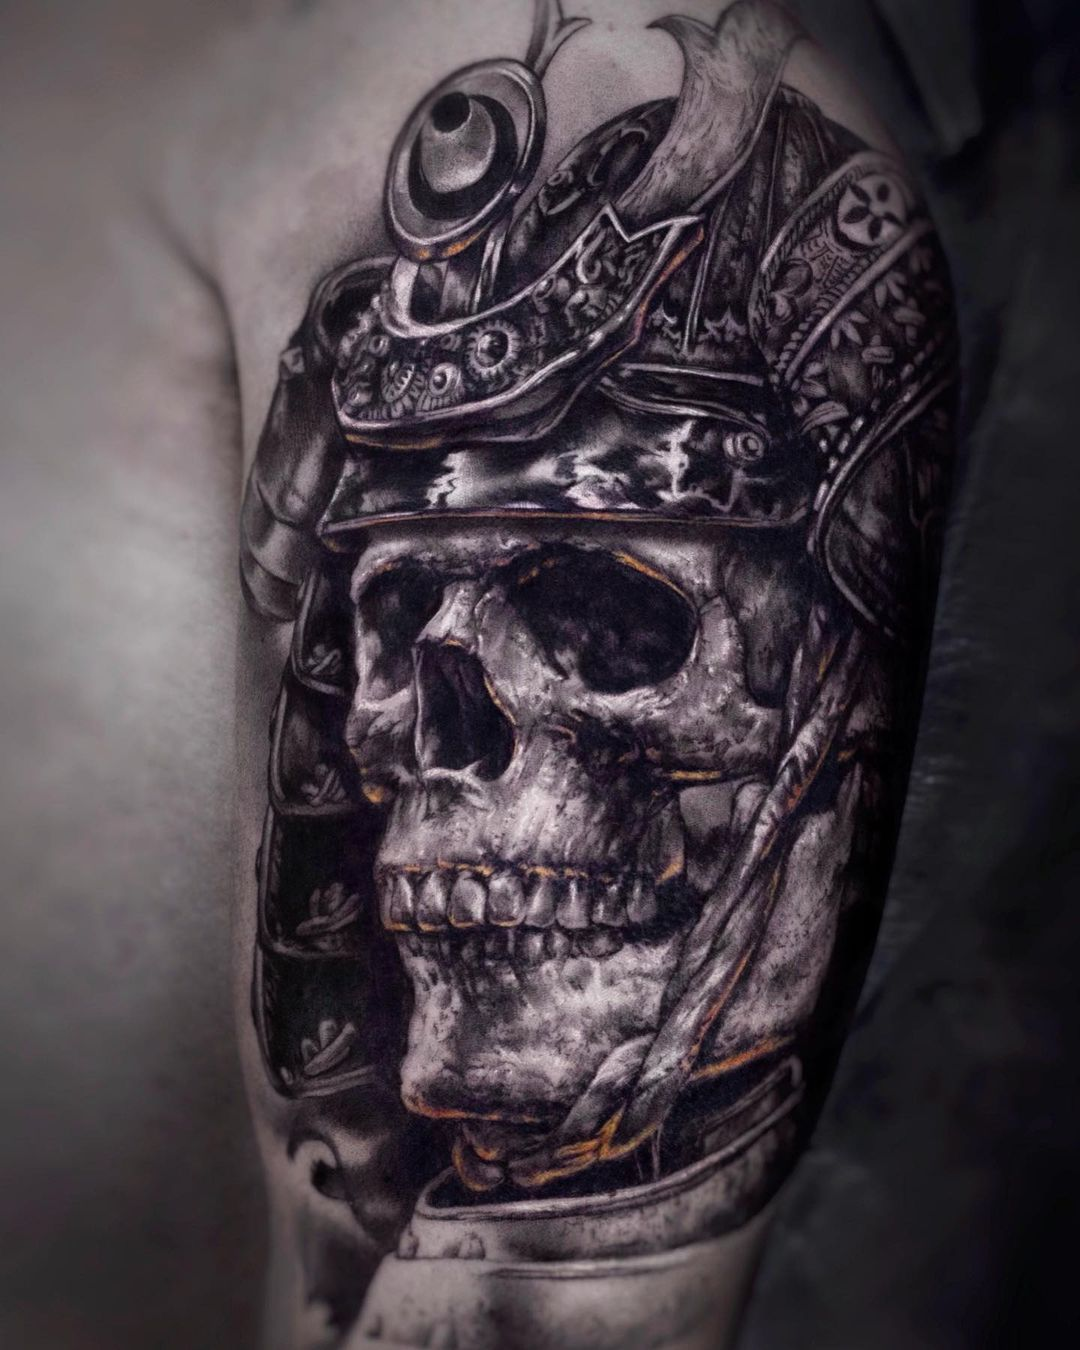 Skull Tattoo On Shoulder In Black And White Colors